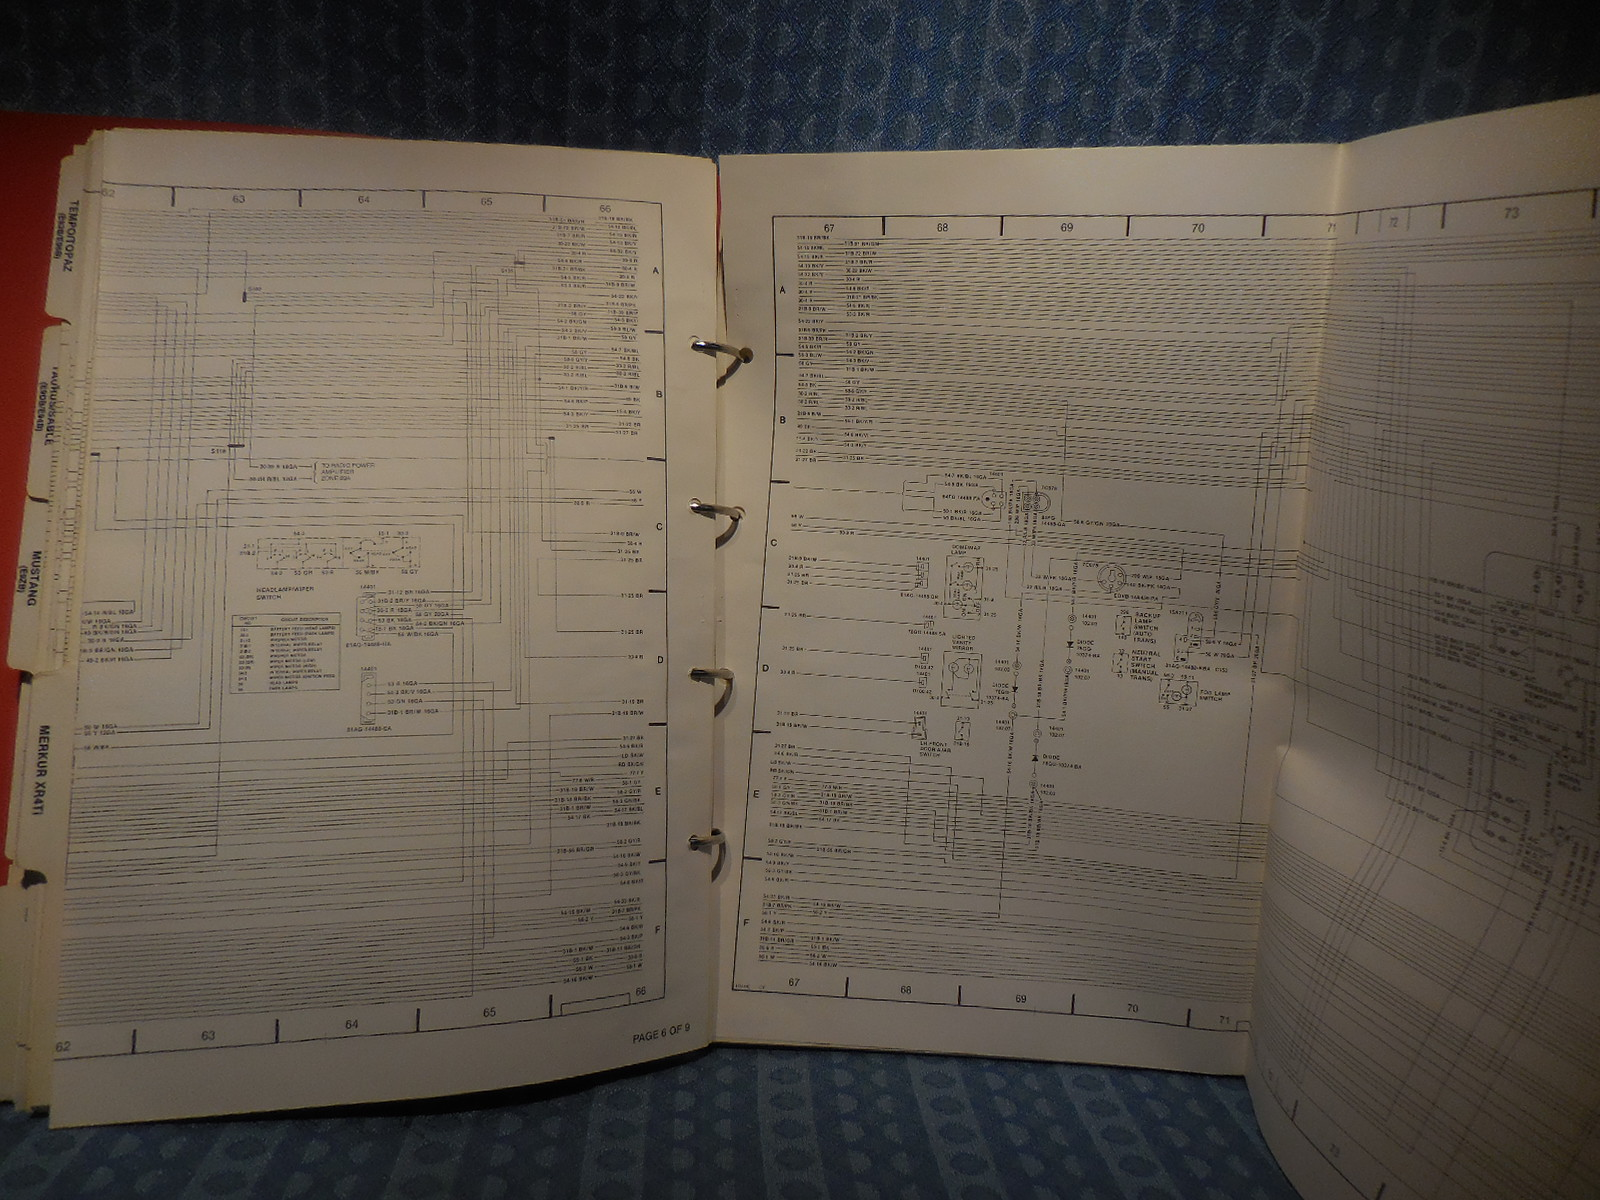 1973 Ford F600 Vacuum Diagram Schematic Diagrams 1975 Mustang 65 Trusted Wiring 460